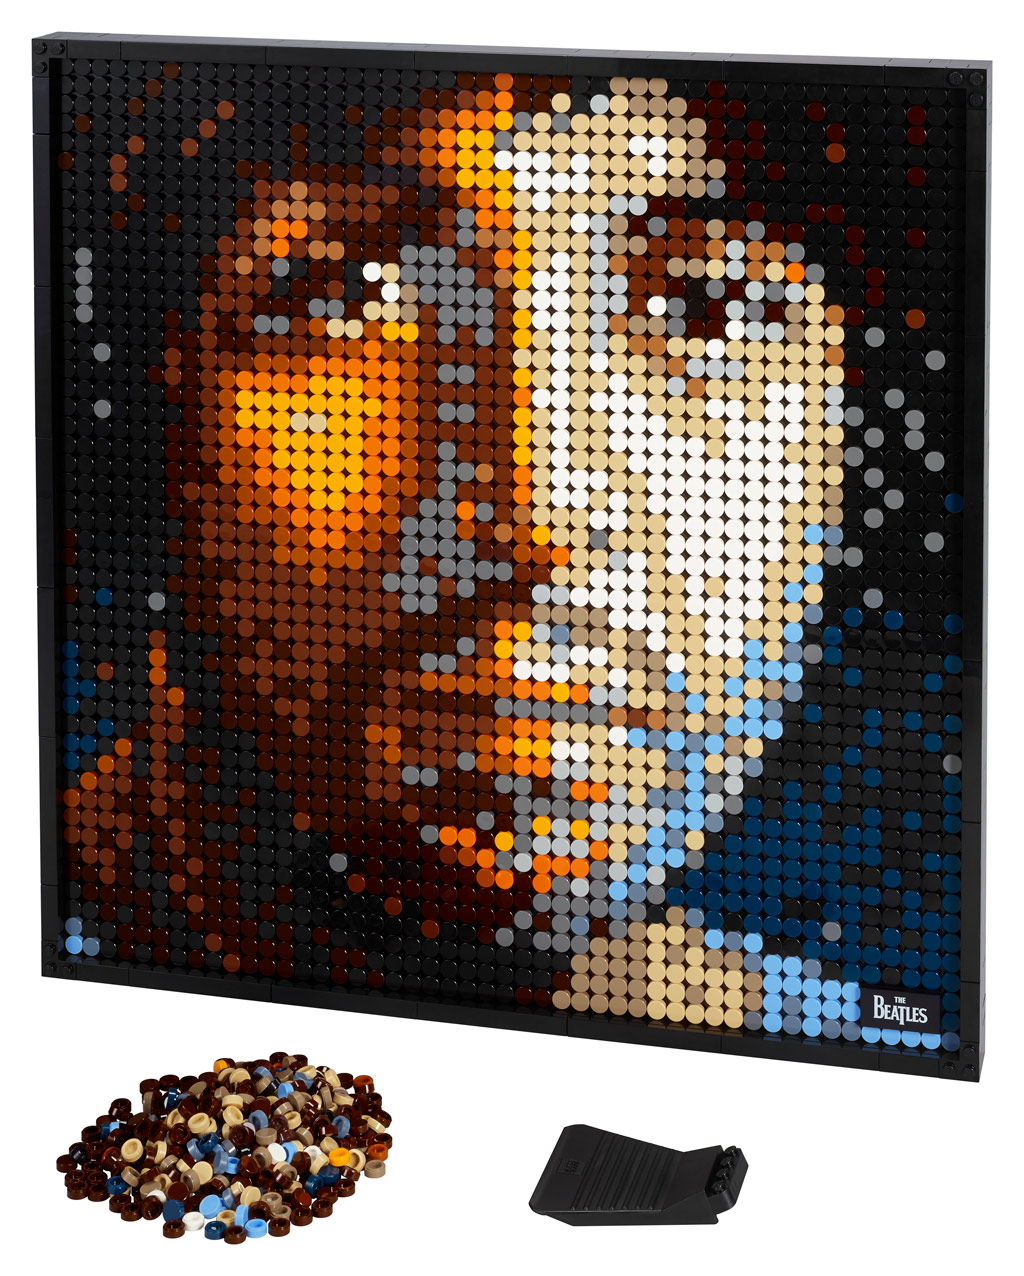 lego-arts-31198-the-beatles-2020-paul-mccartney-mosaic zusammengebaut.com